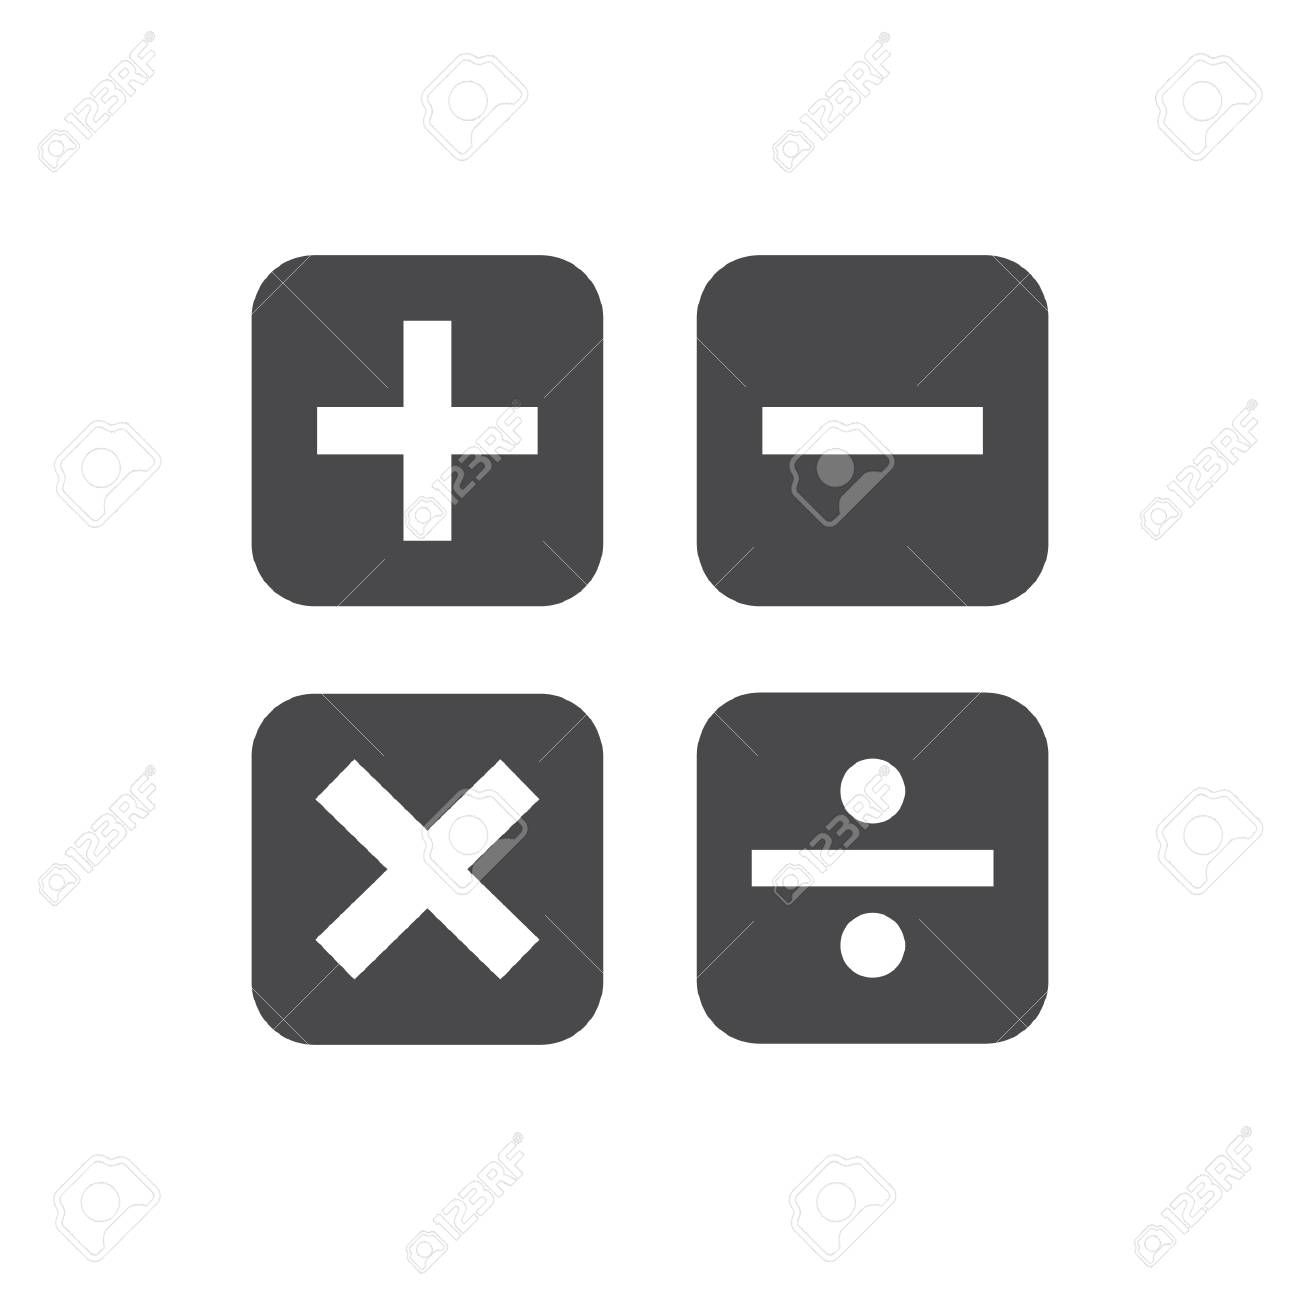 A calculation icons illustration. - 106667799